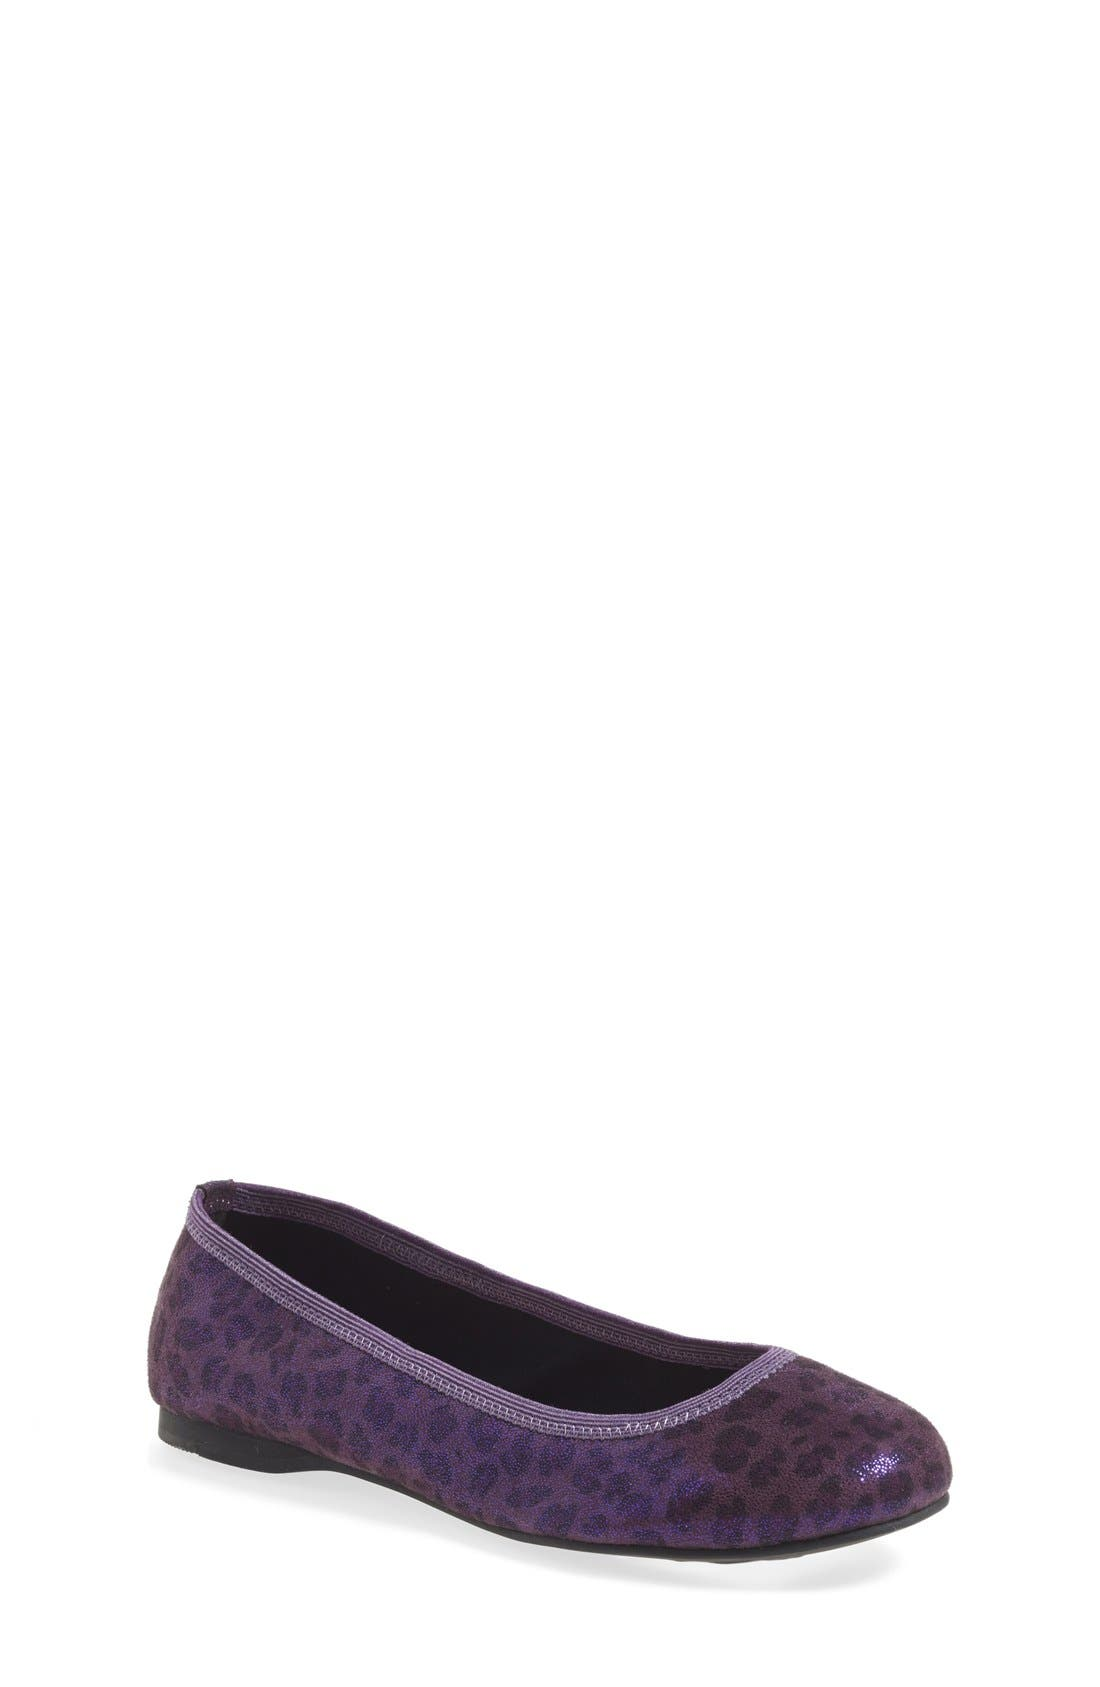 'Josie' Flat,                         Main,                         color, Purple Leopard Fabric